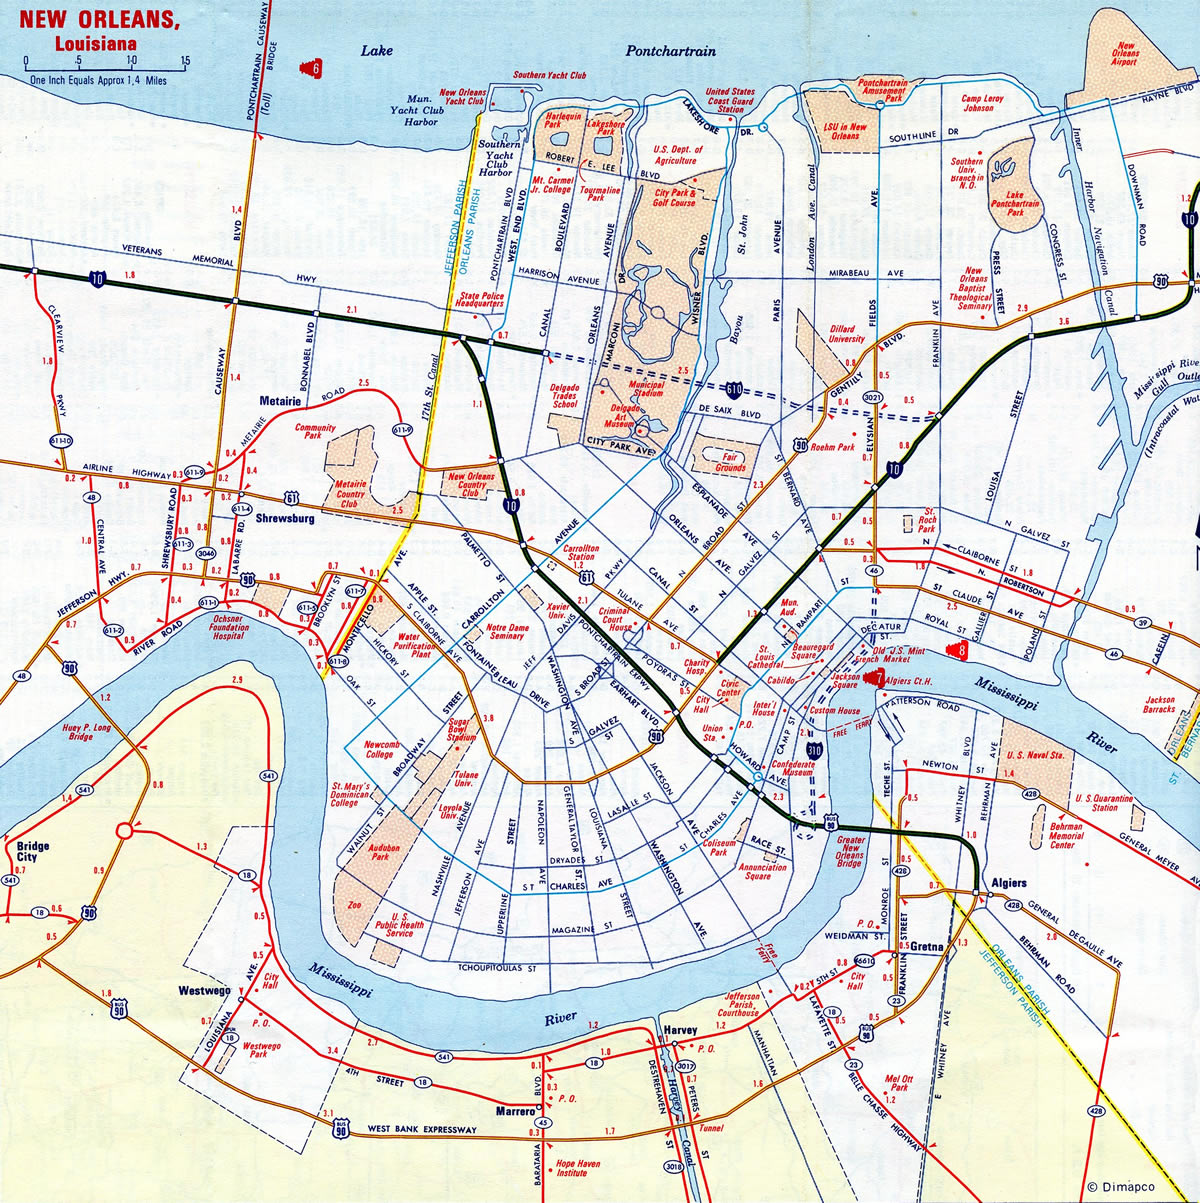 New Orleans - AARoads on new orleans flood map, new orleans ninth ward katrina, new orleans 13th ward map, new orleans wards and precincts, new orleans map by ward, french quarter, 3rd ward of new orleans, calliope projects, 1st ward of new orleans, iberville projects, st. bernard projects, new orleans treme map, 7th ward of new orleans, new orleans crime map, new orleans august 2005, new orleans cathedral, new orleans central business district, lafitte projects, new orleans ward 9, new orleans below sea level map, lower ninth ward, new orleans area map, melpomene projects, desire projects, magnolia projects, 6th ward of new orleans, new orleans east, new orleans swamp tours, new orleans ward map current, new orleans districts and wards, wards of new orleans, louisiana sea level map, new orleans louisiana, six flags new orleans, florida projects, algiers, louisiana, new orleans creole women of, new orleans ward's, eastern new orleans,